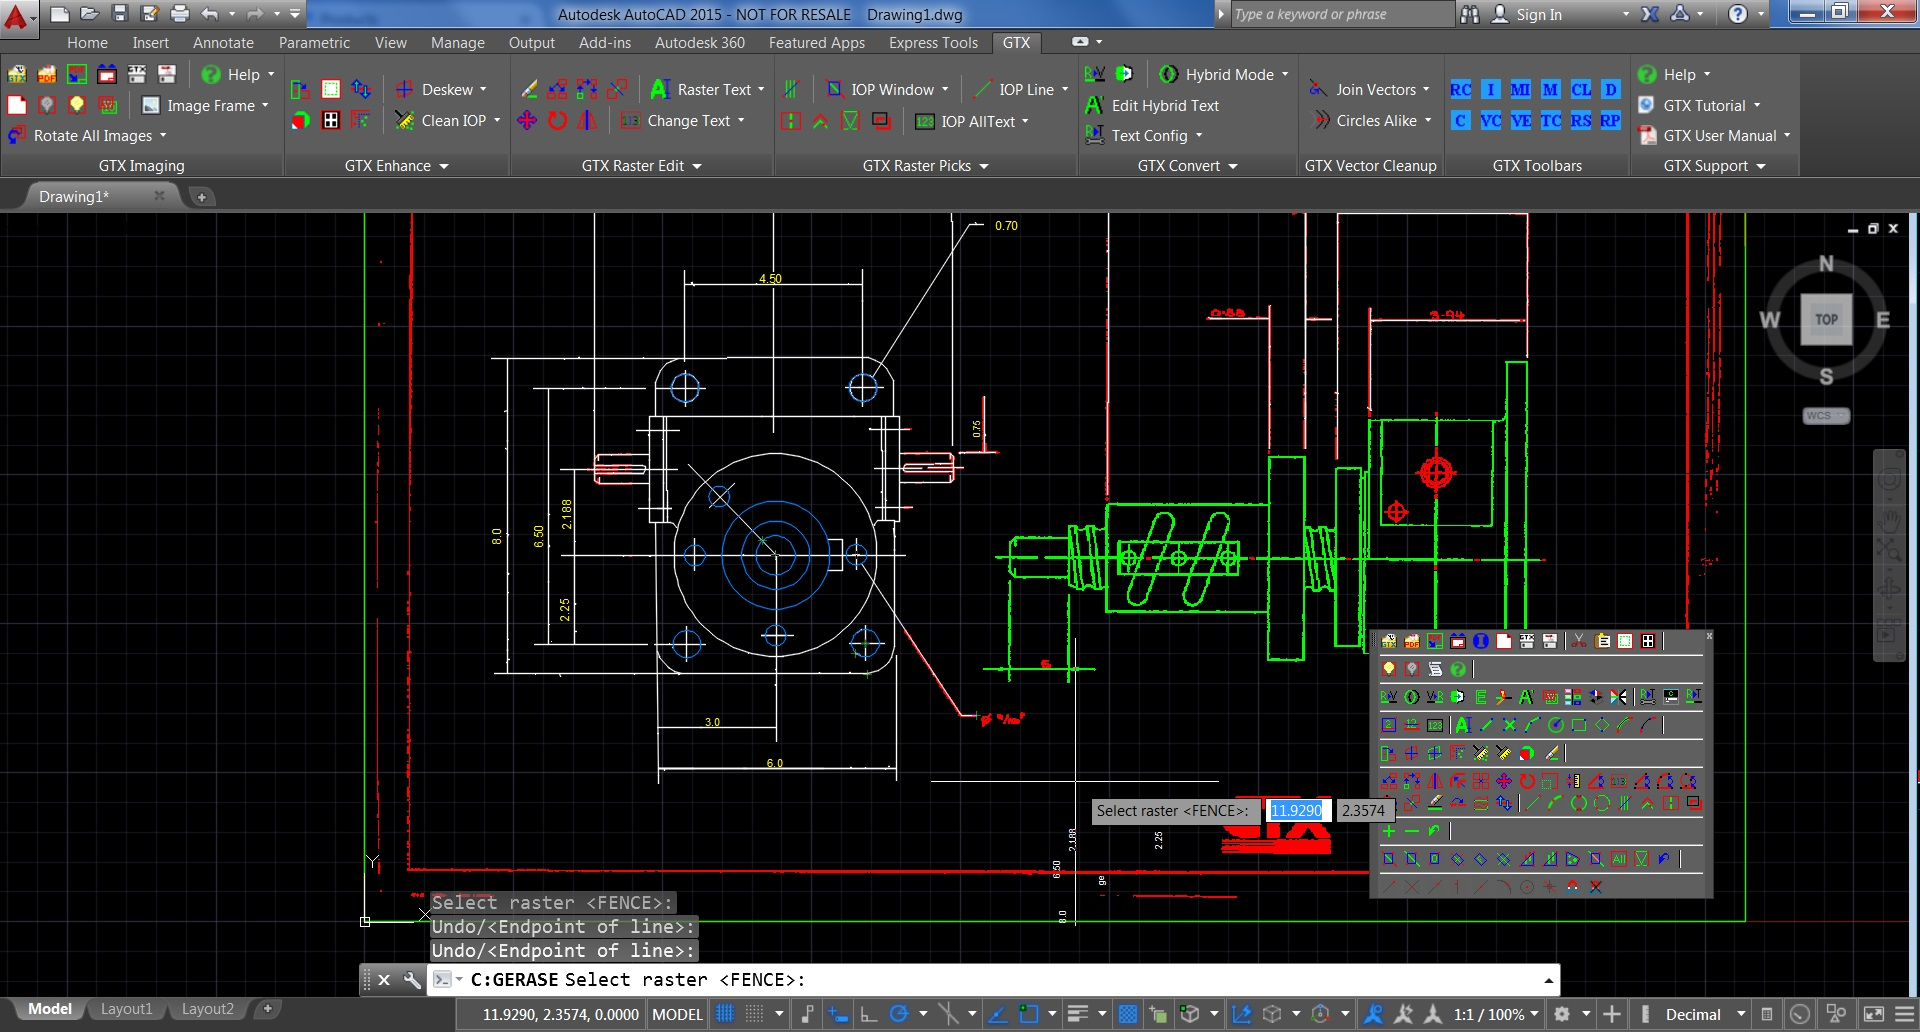 autocad 2015 recommended system requirements